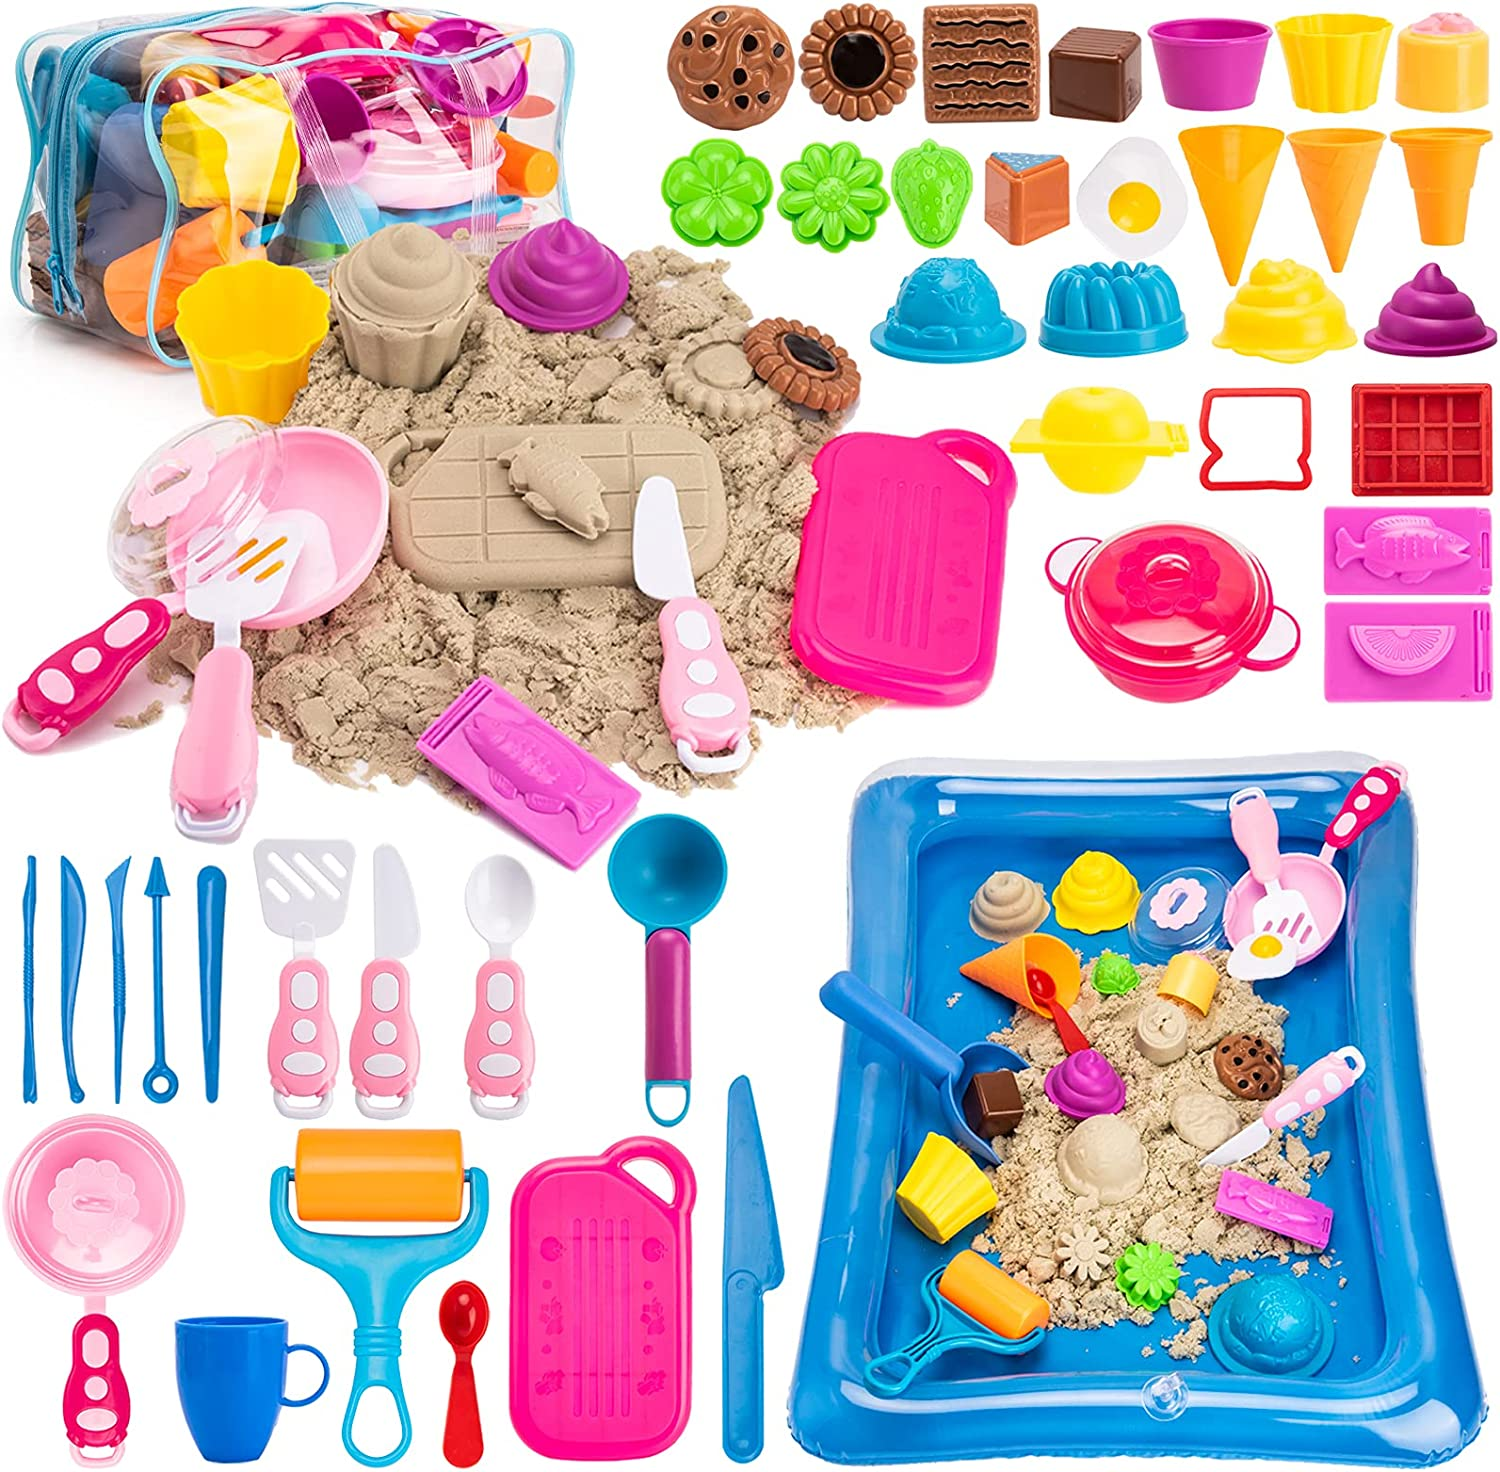 Storage Bag Cookware Molds for Boys Girls Gifts Cooking Serving Tools Inflatable Tray 3lbs All-Natural Scented Sensory Sand Play Sand for Kids Sandbox 44Pcs Cake Ice Cream Sand Toys